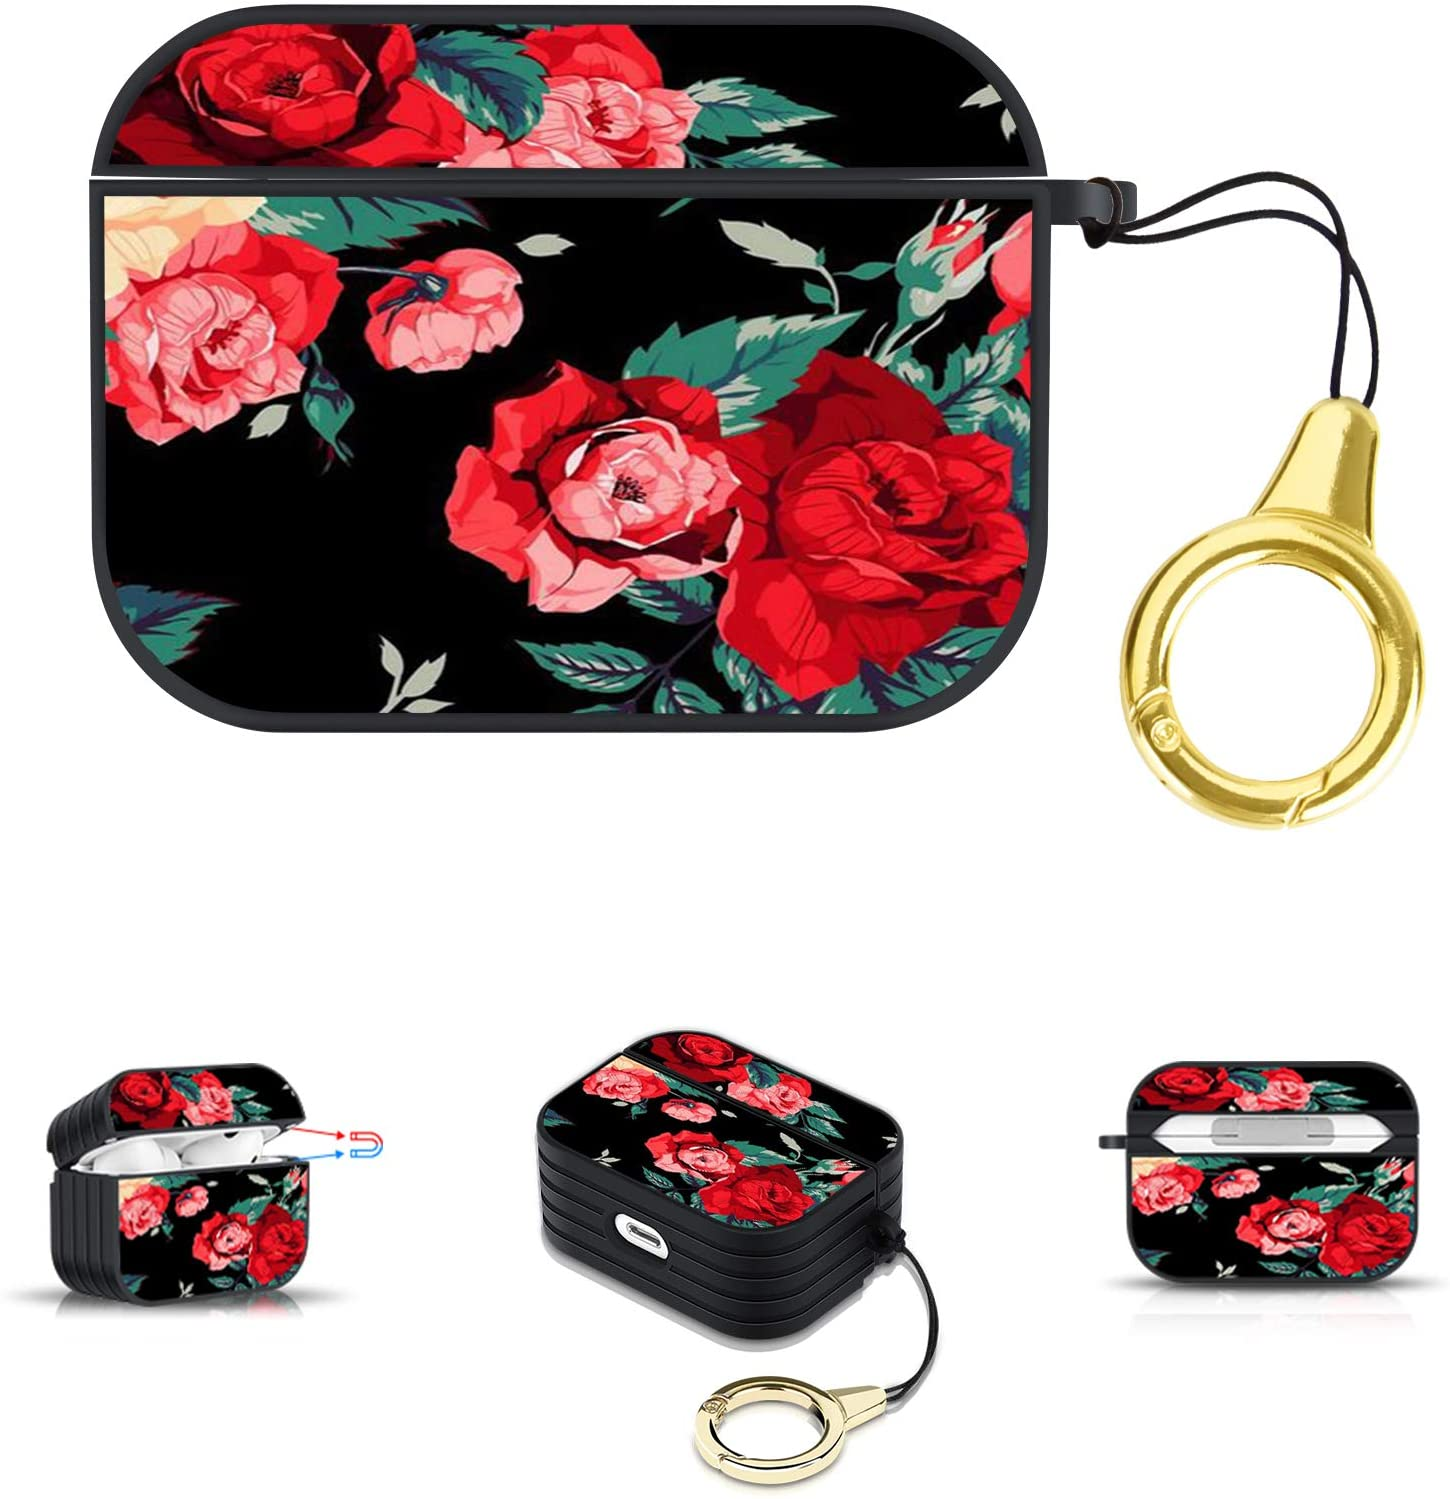 AIGOMARA AirPods Pro Case Red Flower Cute Stripe Non-Slip Edge Magnetic Design Shockproof Full Protective Hard Cover for AirPods Pro Charging Box with Lanyard Buckle-Black